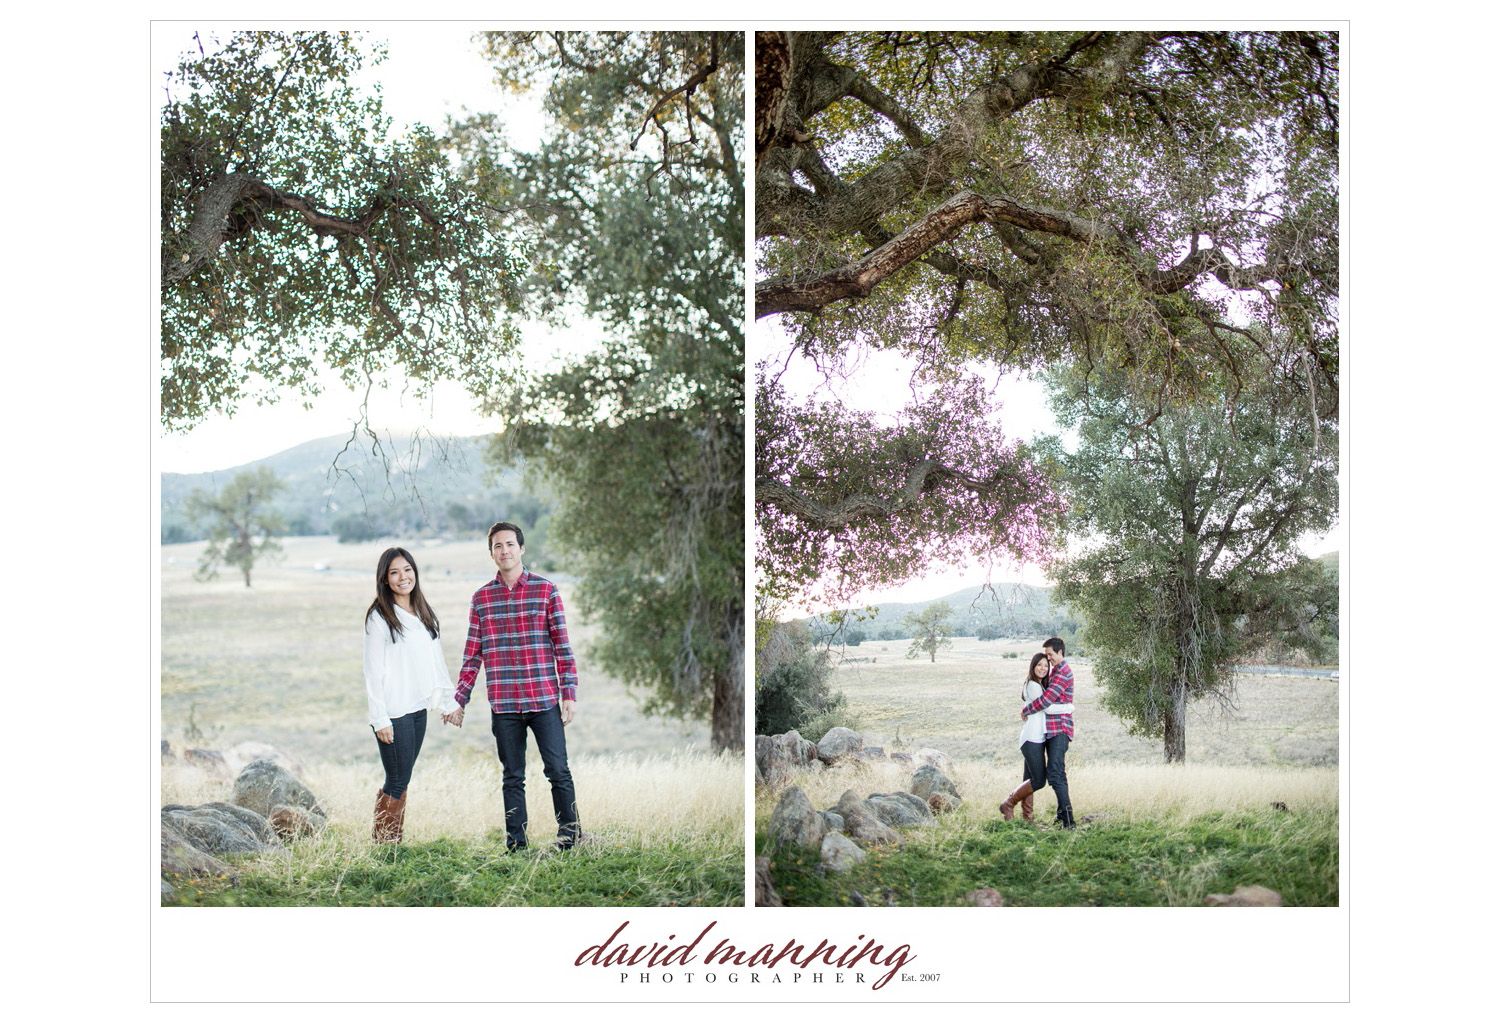 Del-Mar-Ramona-Julian-Engagement-Photos-David-Manning-Photographers-0010.jpg